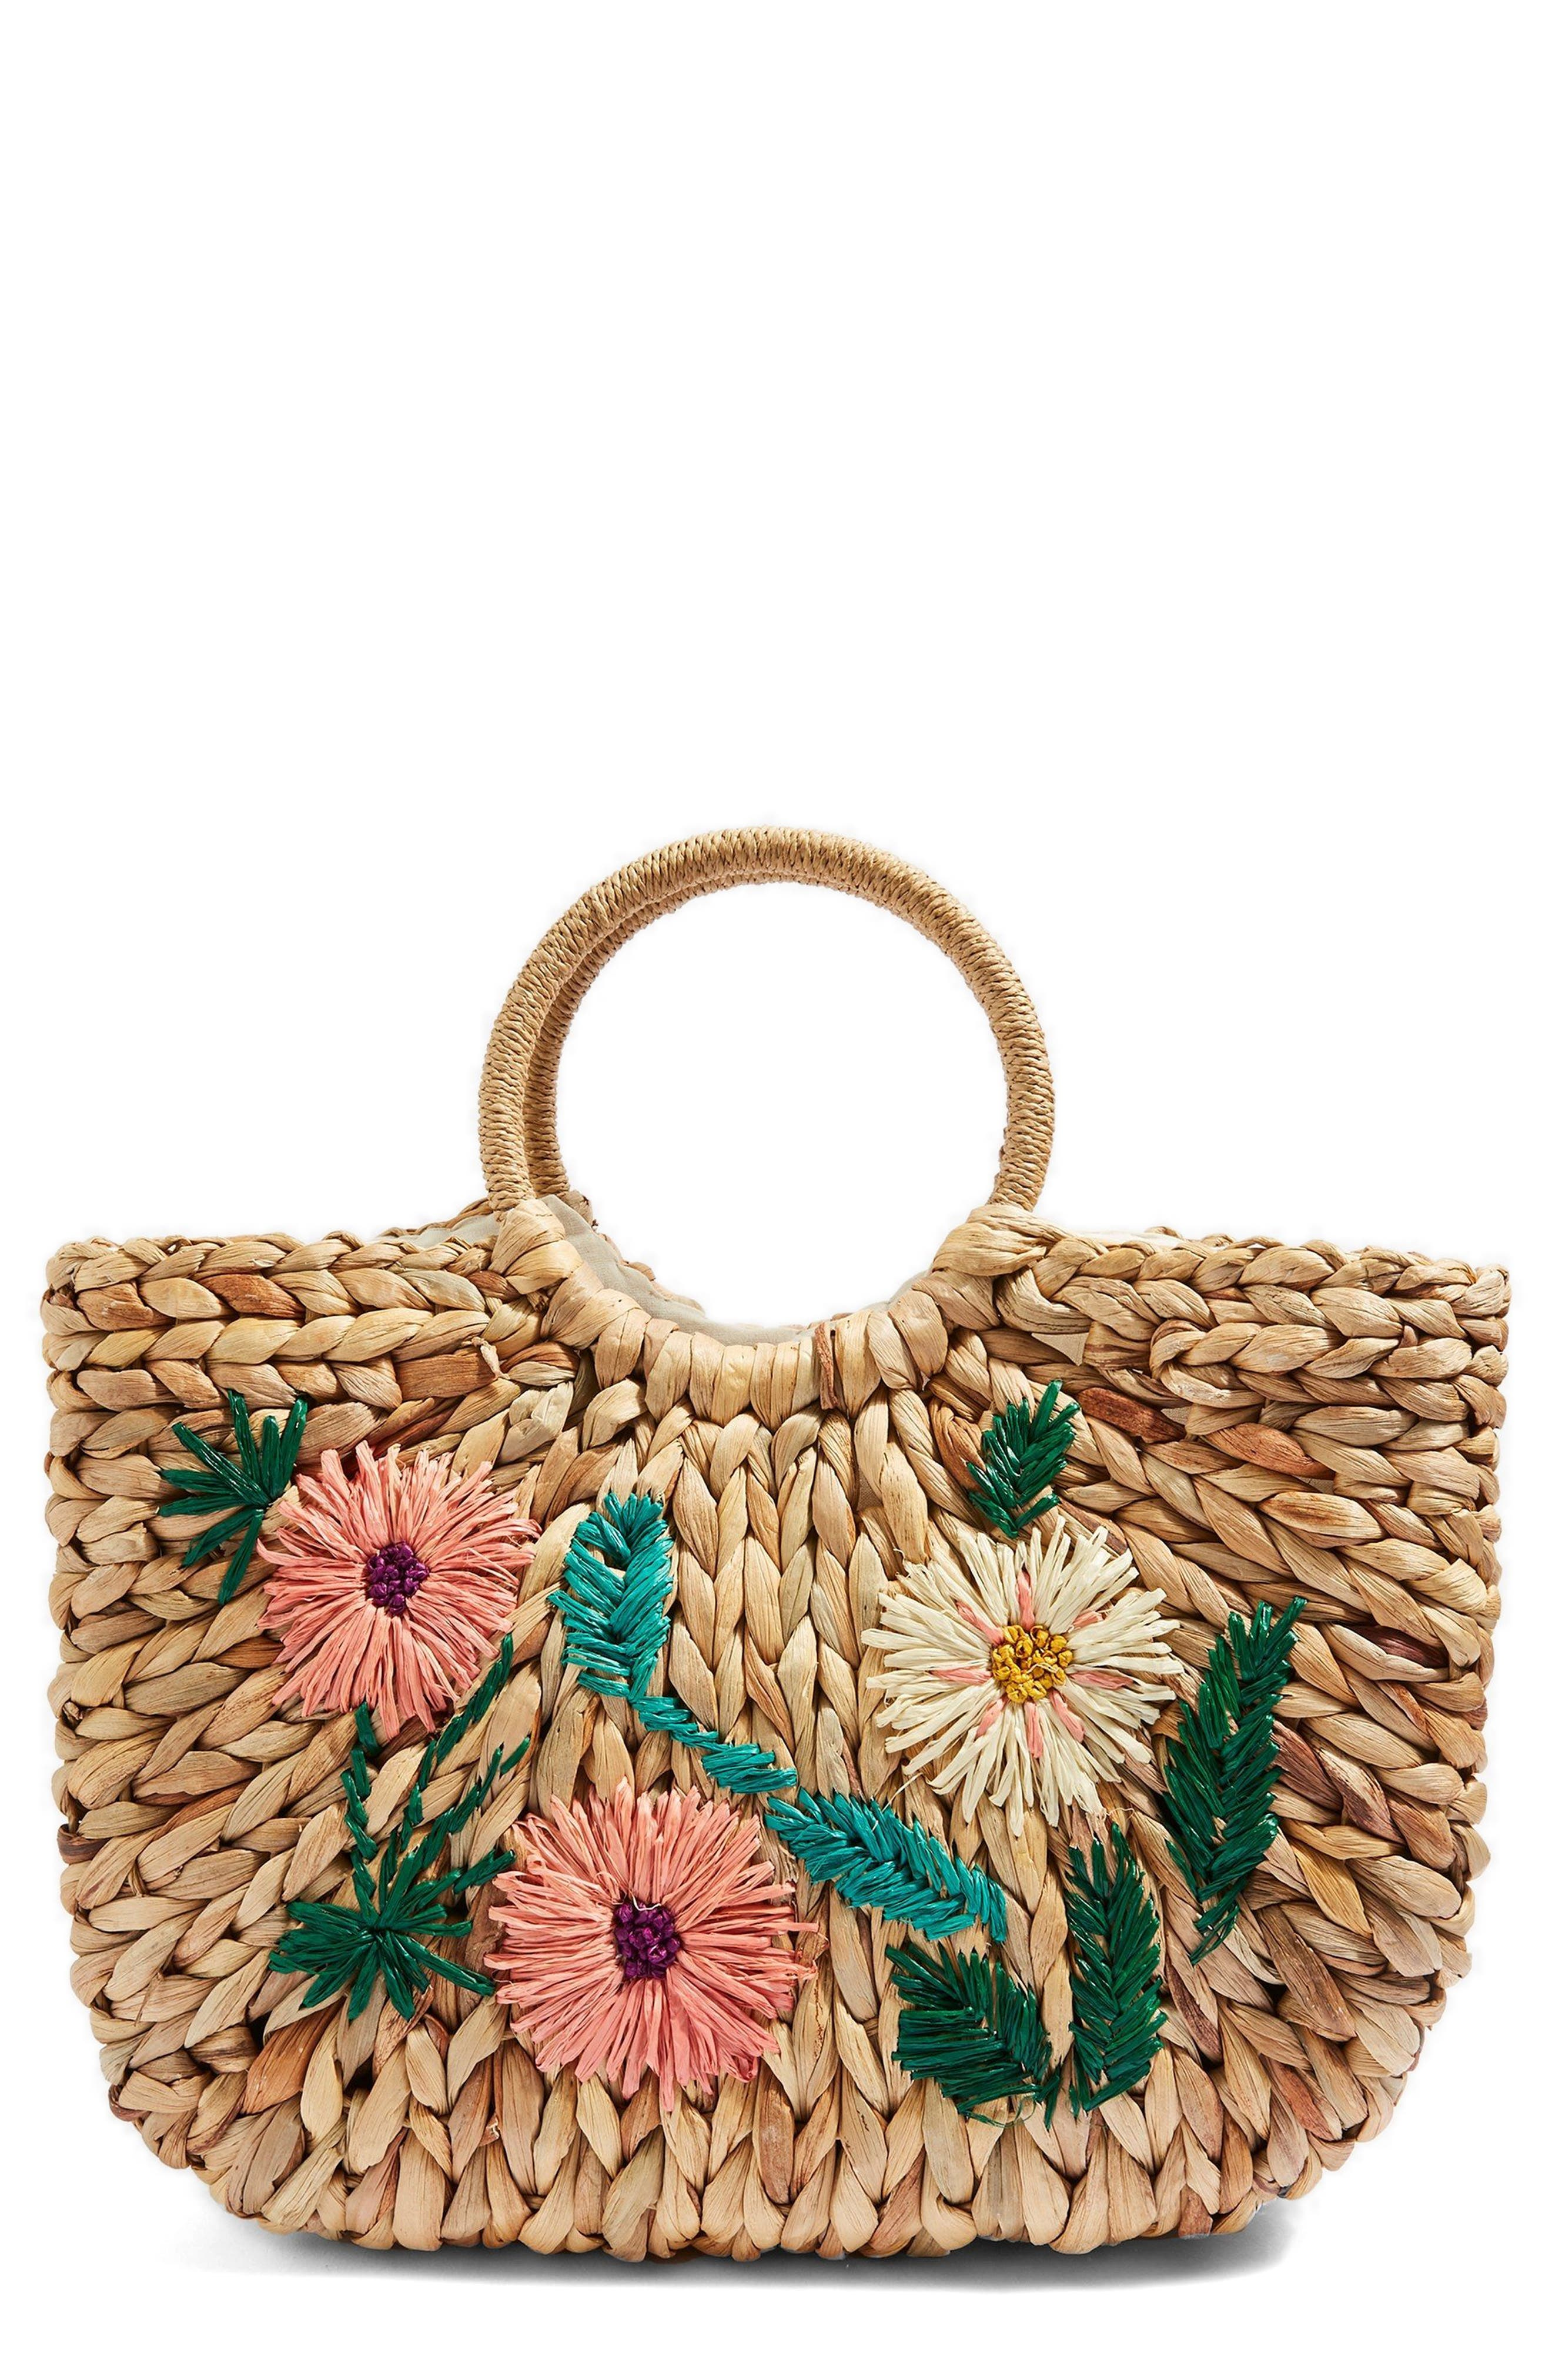 Beverly Floral Embroidered Straw Tote Bag,                             Main thumbnail 1, color,                             250